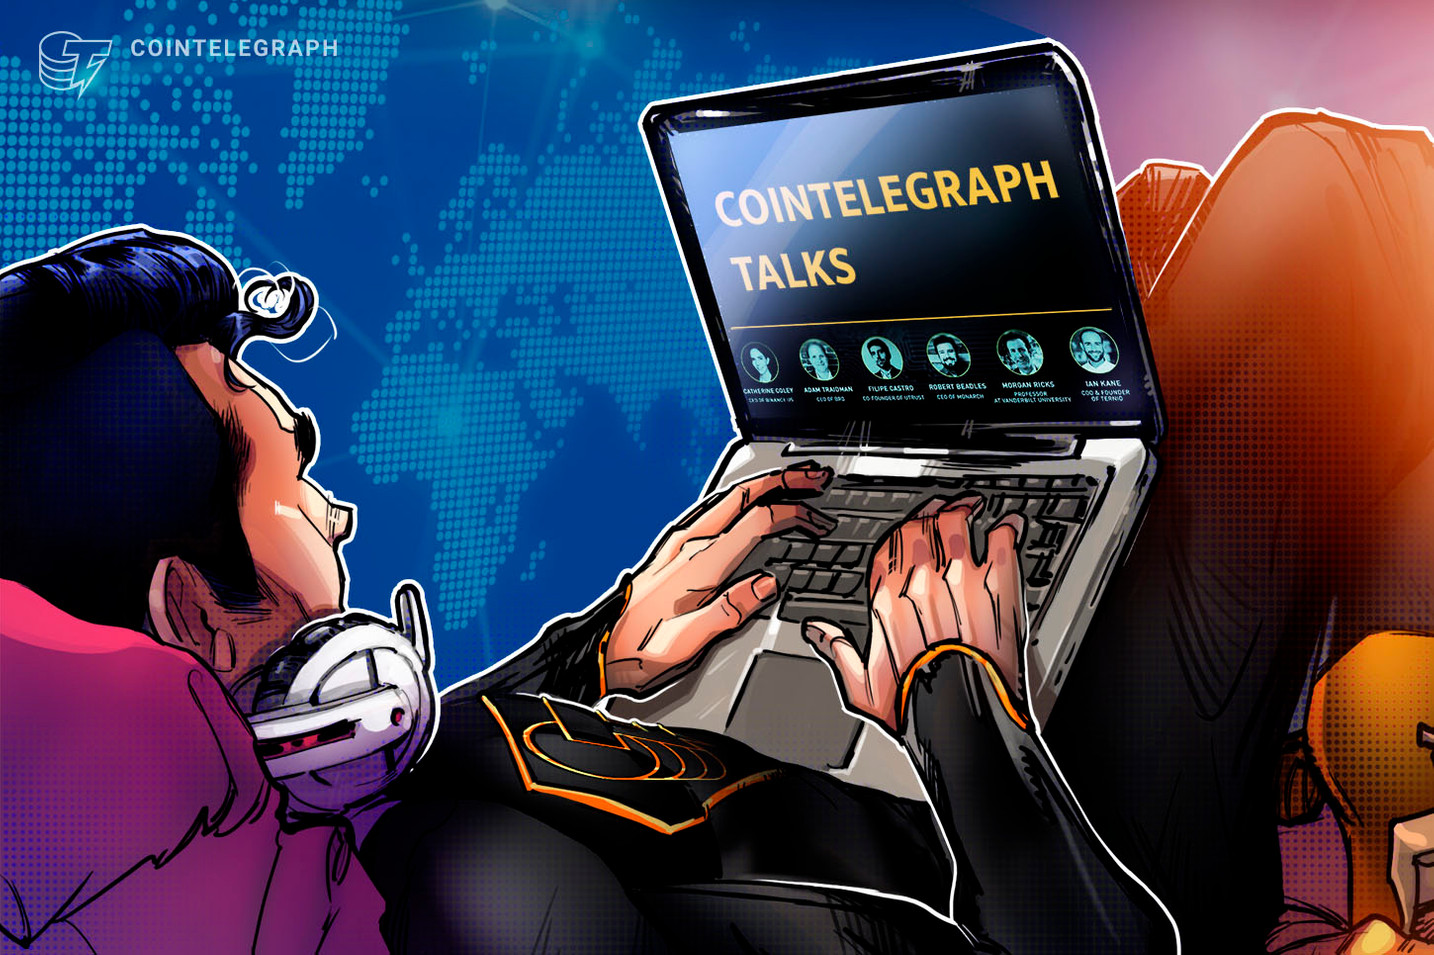 'Cointelegraph Talks' Online Meetup to Discuss E-Payments and Digital Dollar